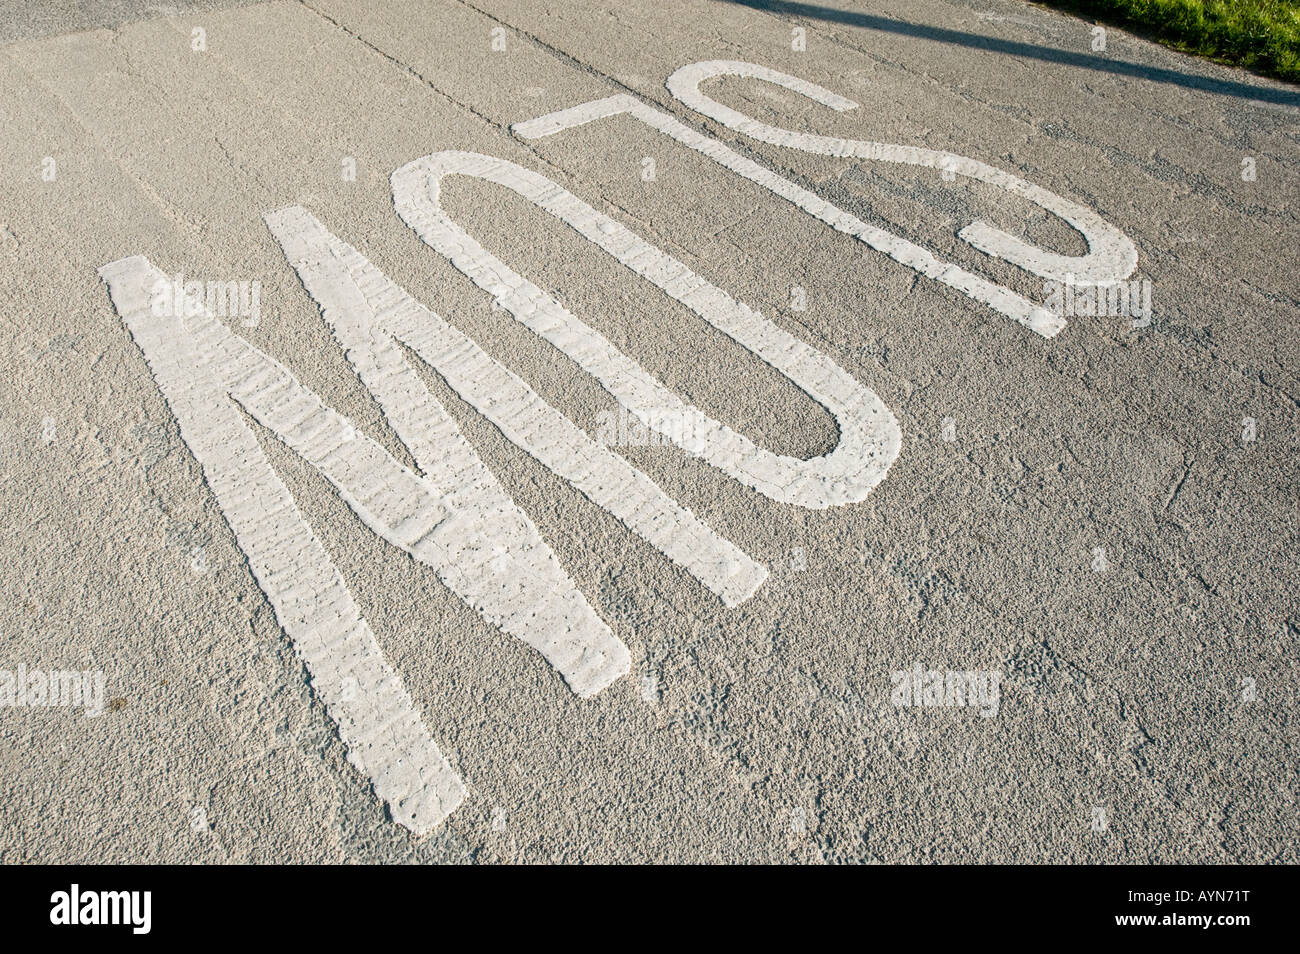 Road Traffic instruction sign - SLOW - Stock Image